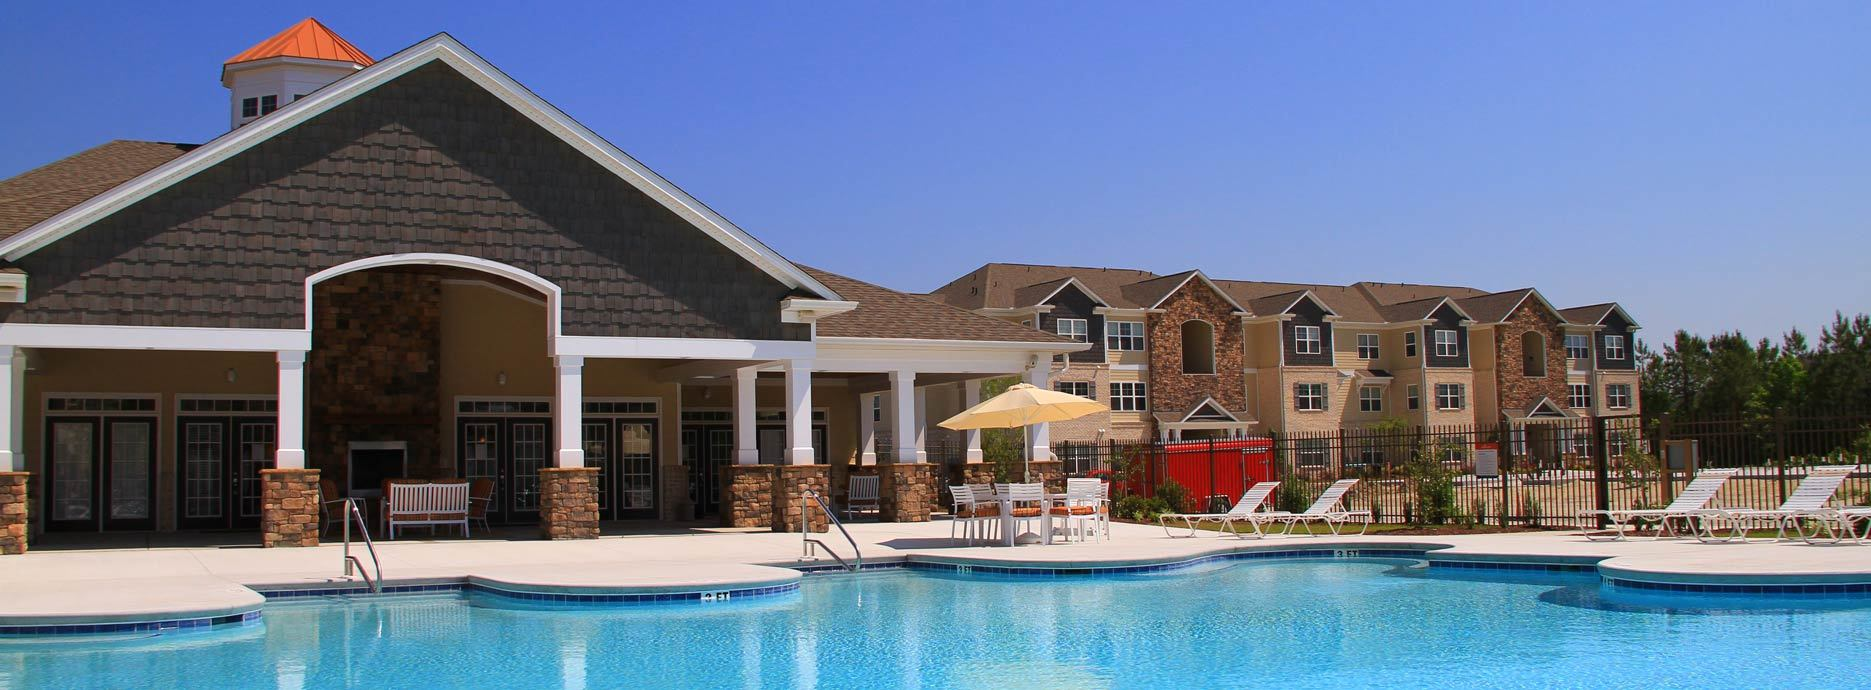 Jacksonville apartments large pool area just for you